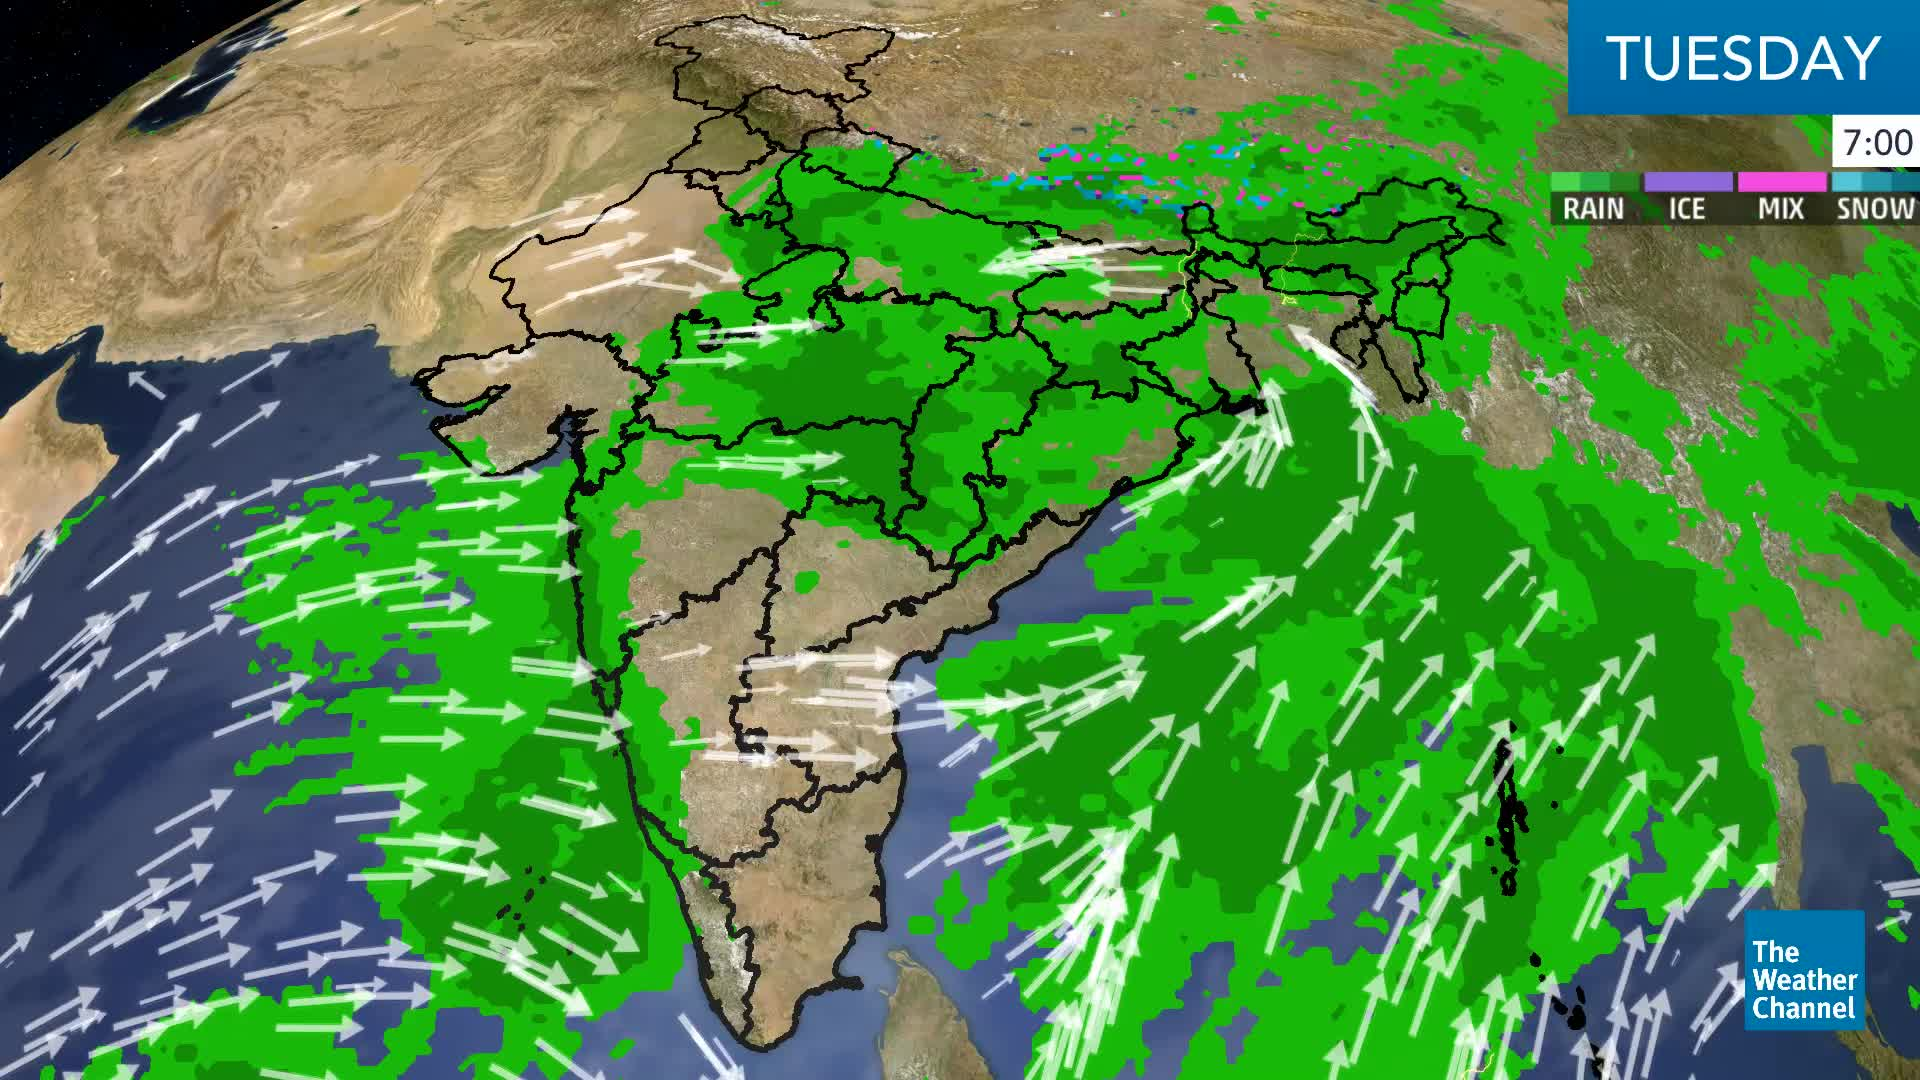 Large Parts of India to Get Heavy Rain Today | The Weather